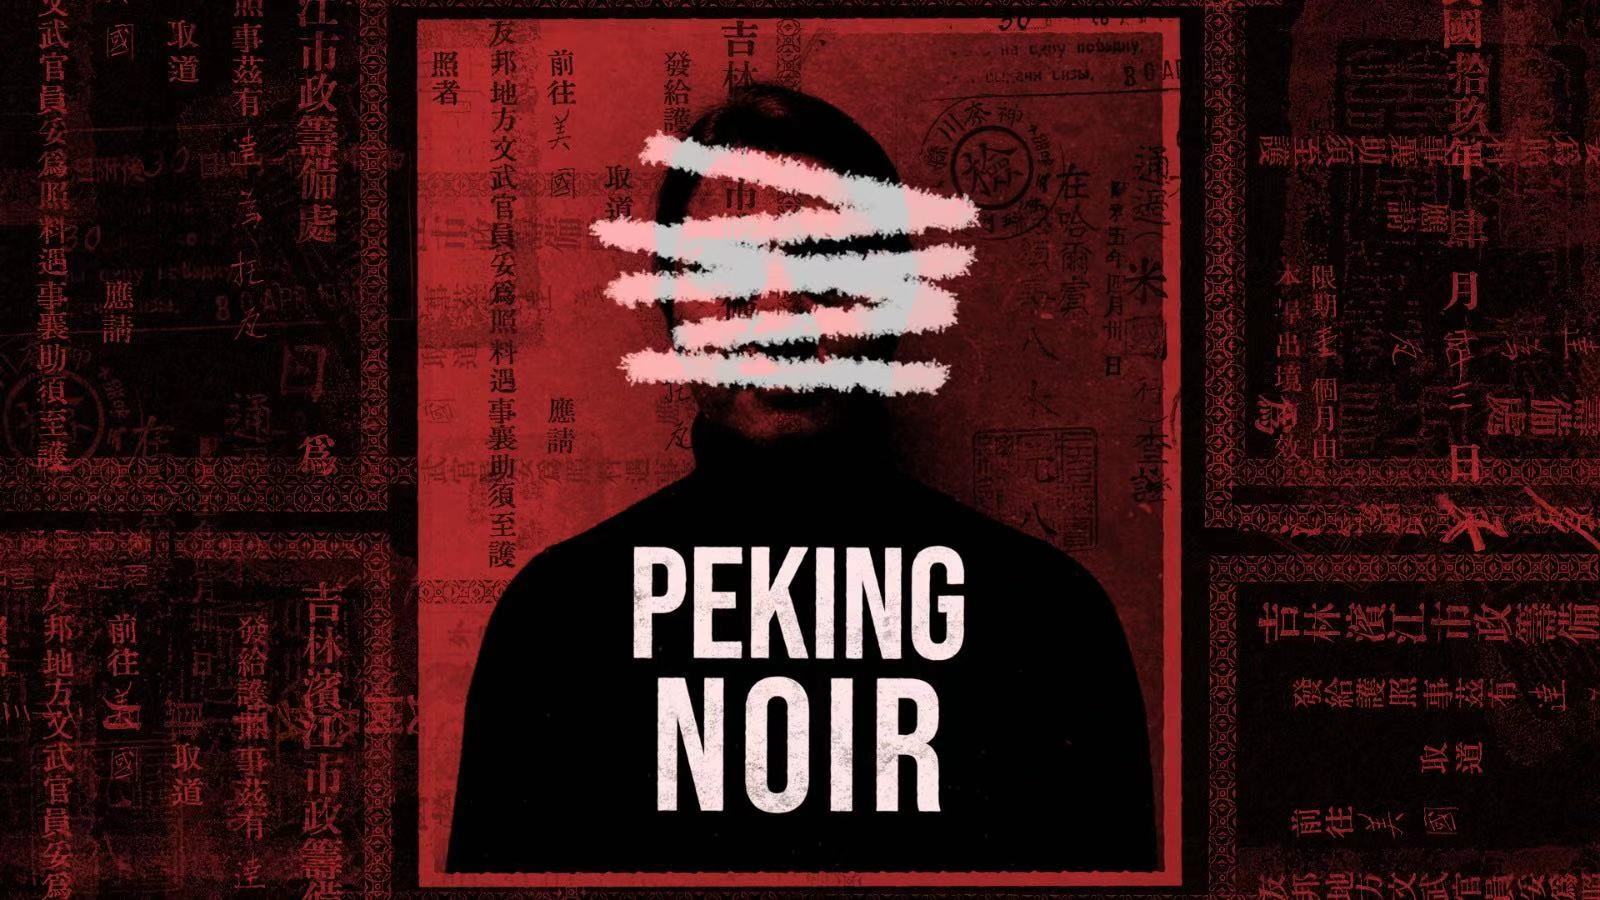 Sex, Drugs & Bank Jobs: New Paul French Drama Peking Noir